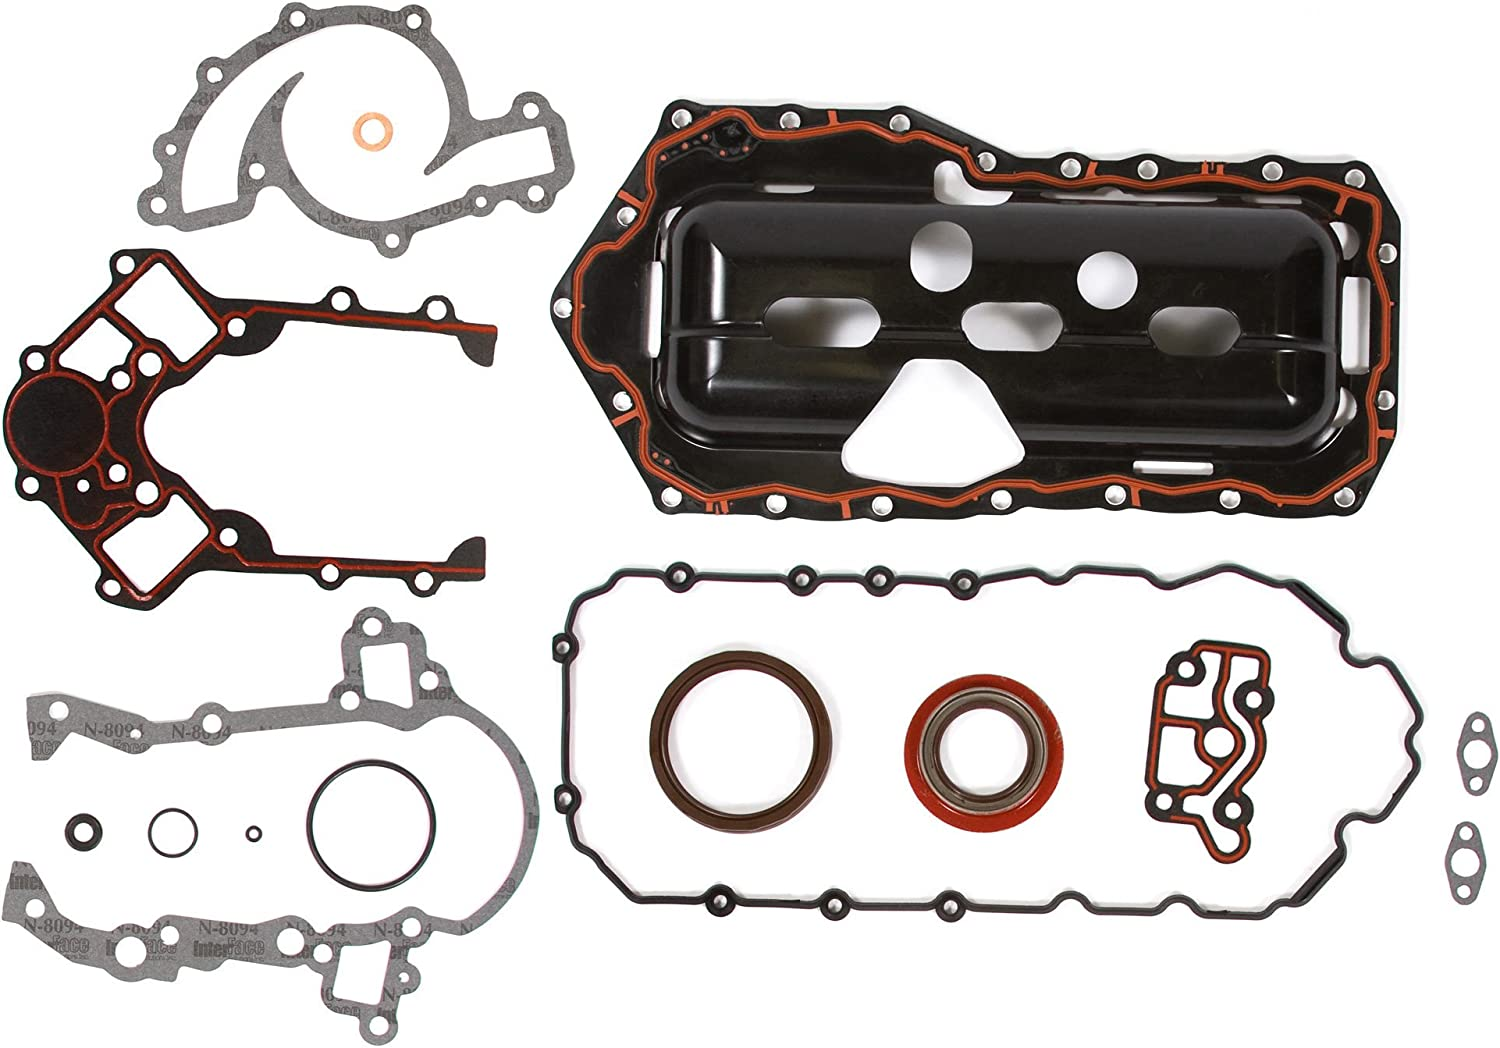 Full Gasket Set for 04-05 Pontiac Grand Prix Supercharged 3.8L 3800cc OHV 12V